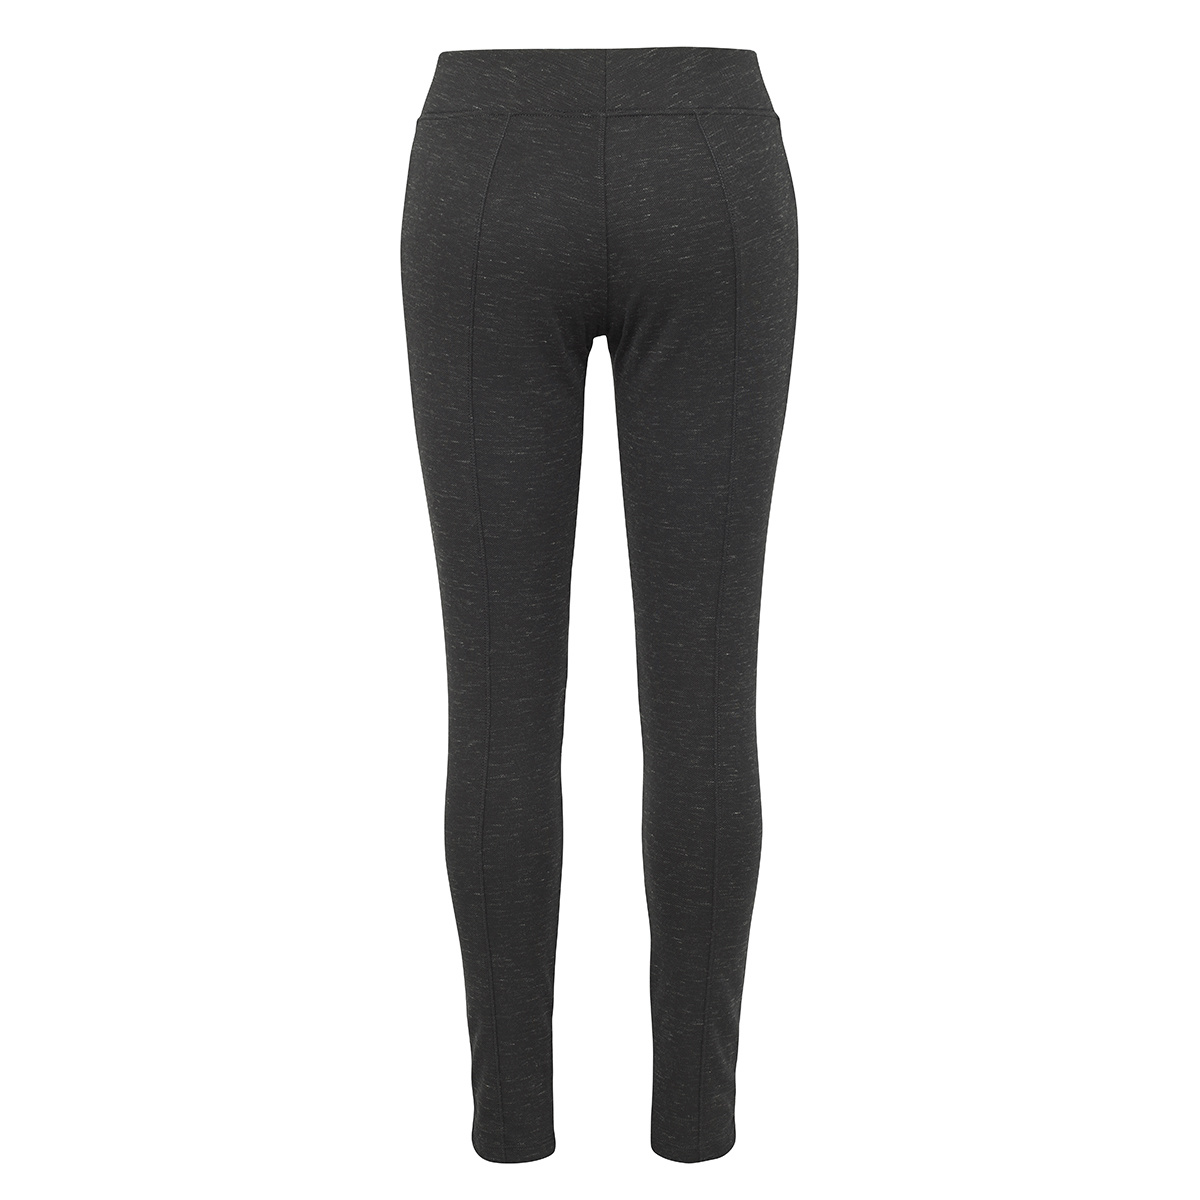 Lucerne Ponte Slim Pant, Asphalt Heather